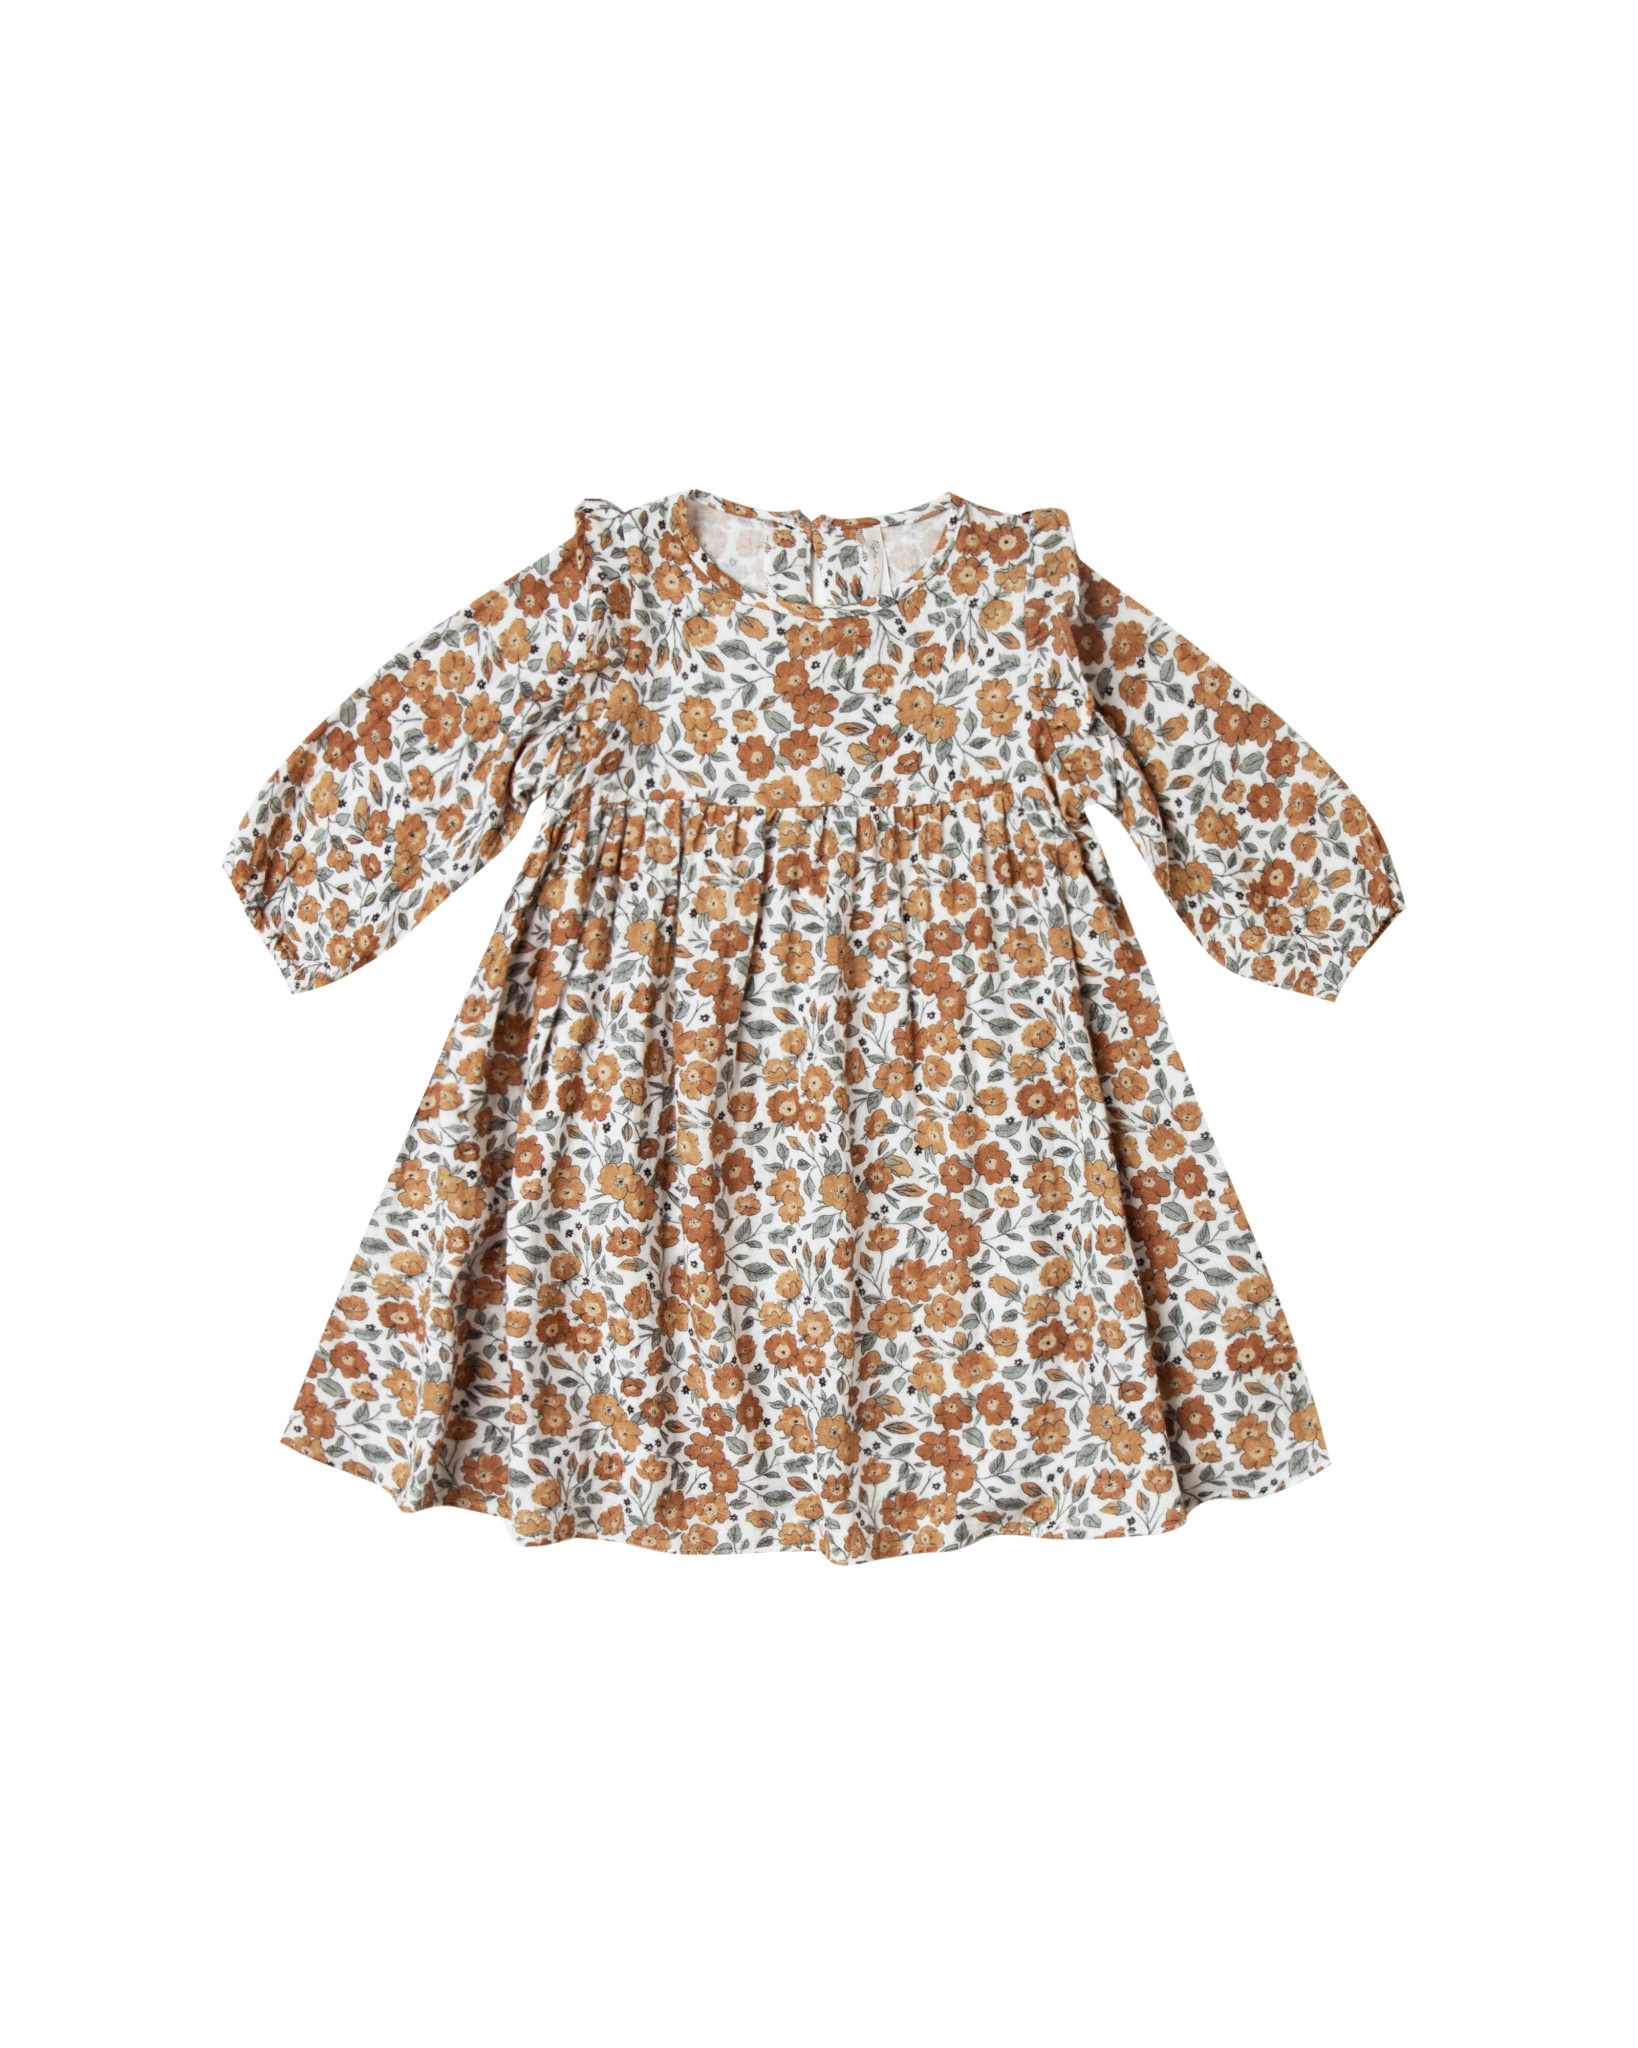 RYLEE AND CRU Piper Dress